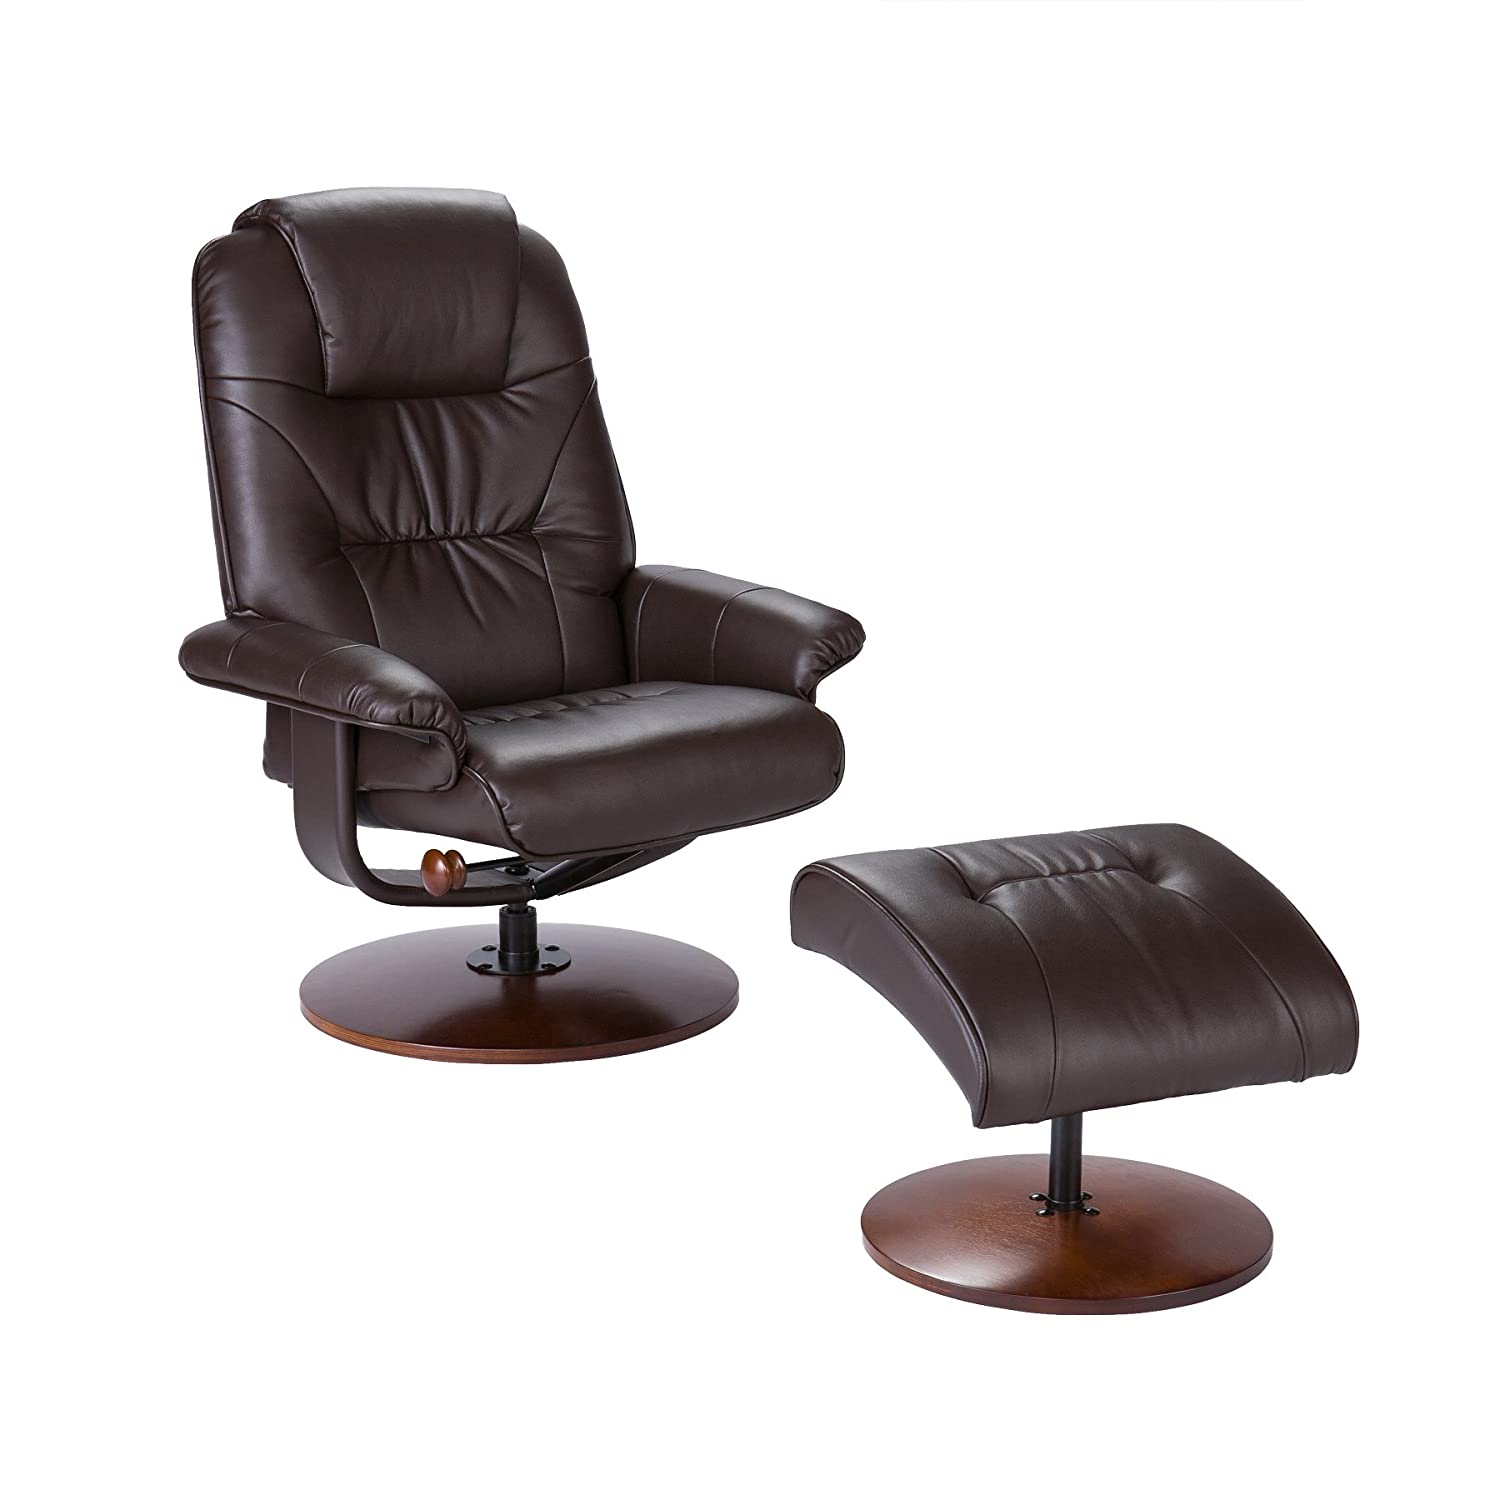 Prime Southern Enterprises Leather Recliner And Ottoman Brown Uwap Interior Chair Design Uwaporg